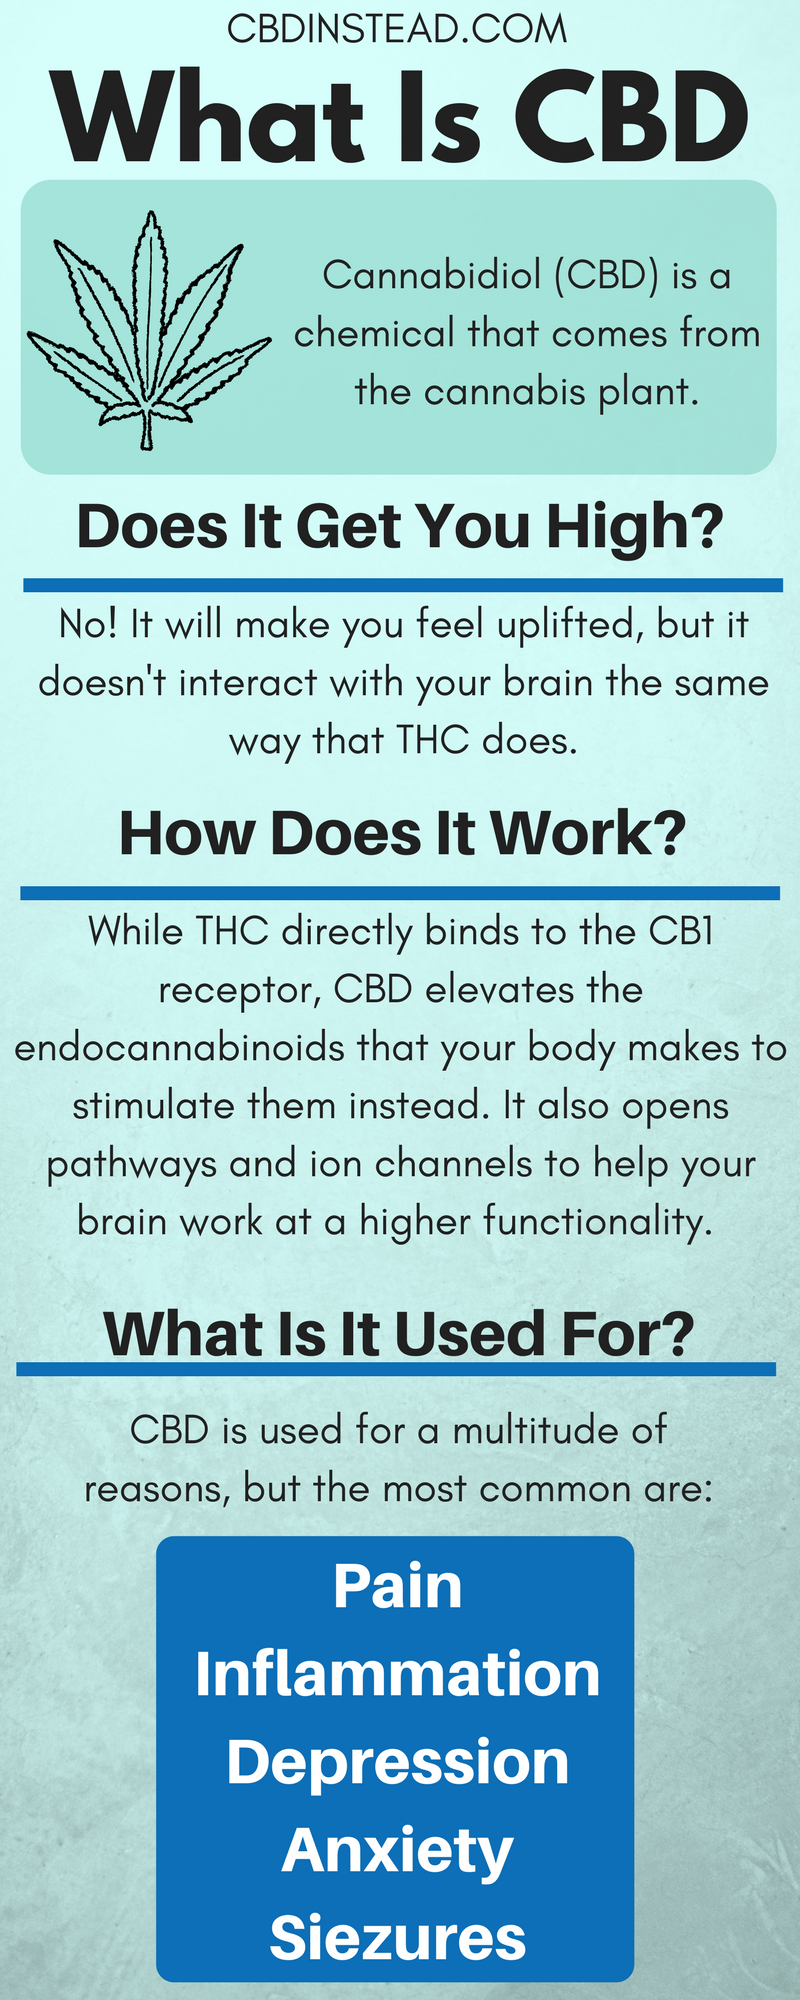 cbd comes from cannabis, but it doesn't get you high. you can learn